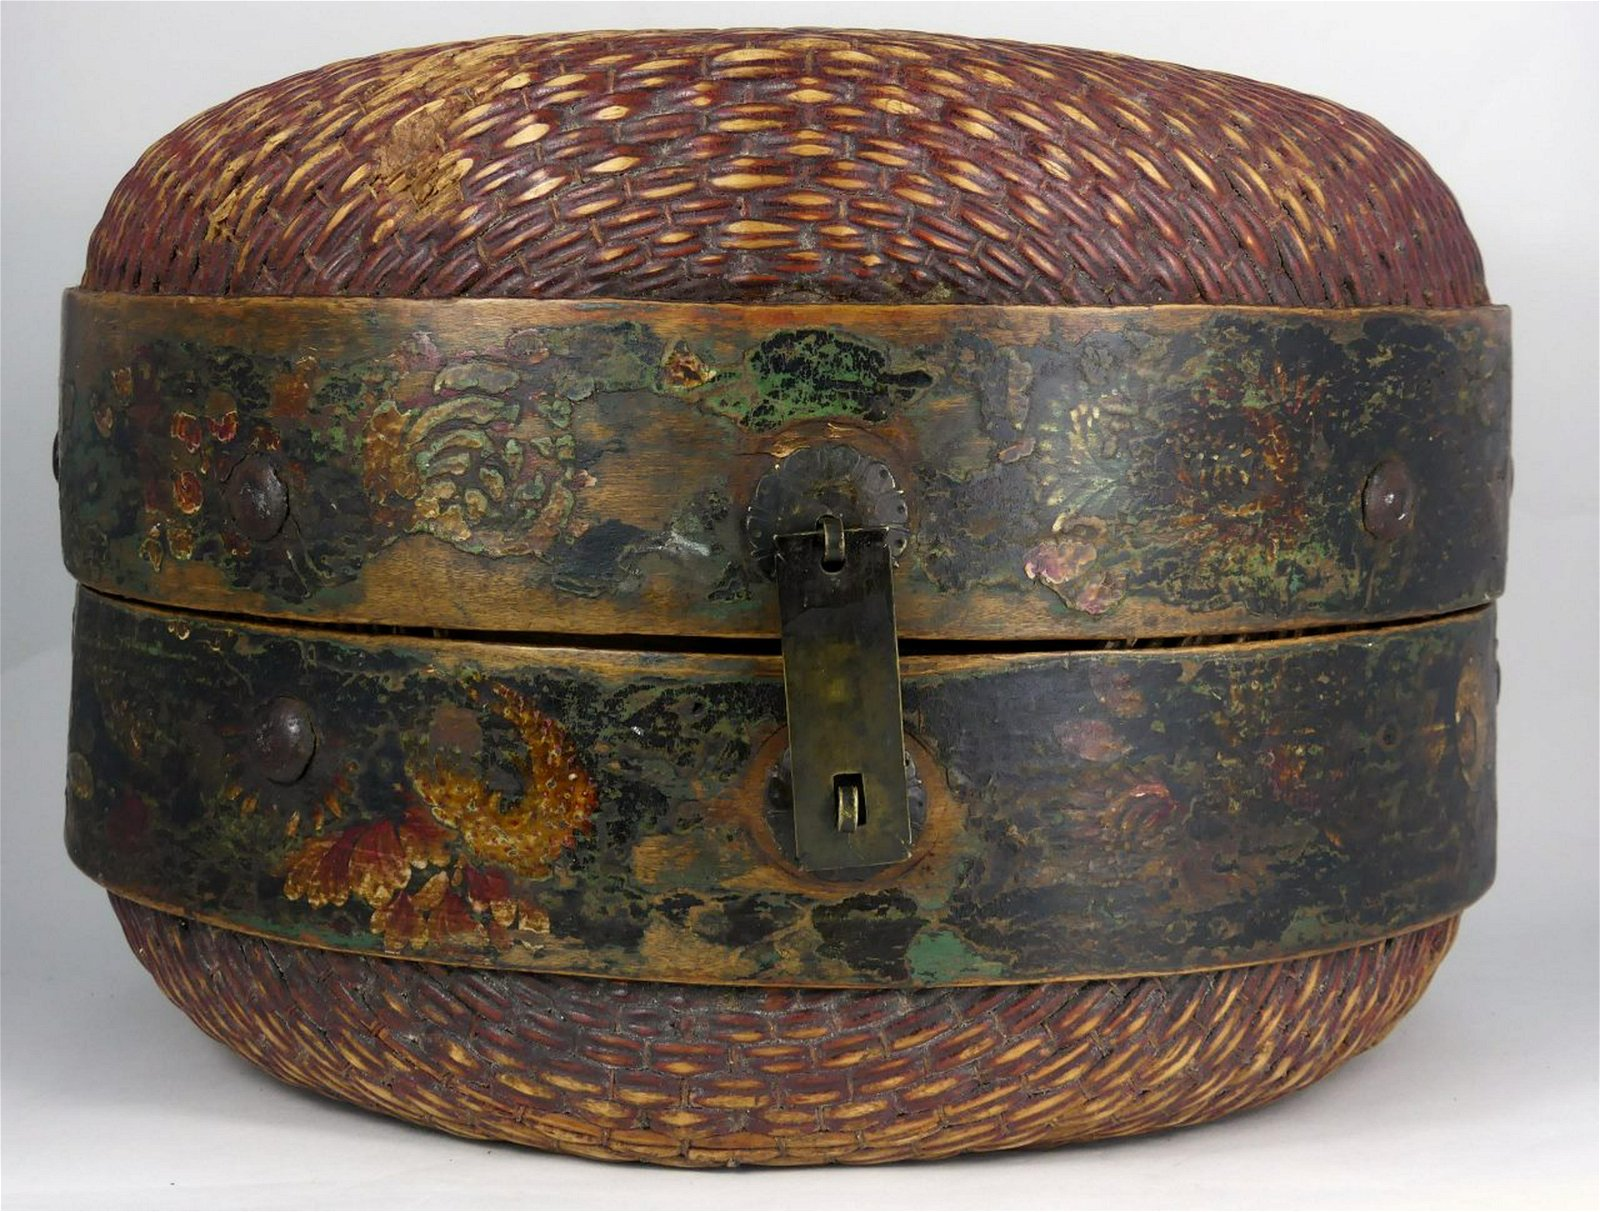 ANTIQUE CHINESE WOVEN BASKET